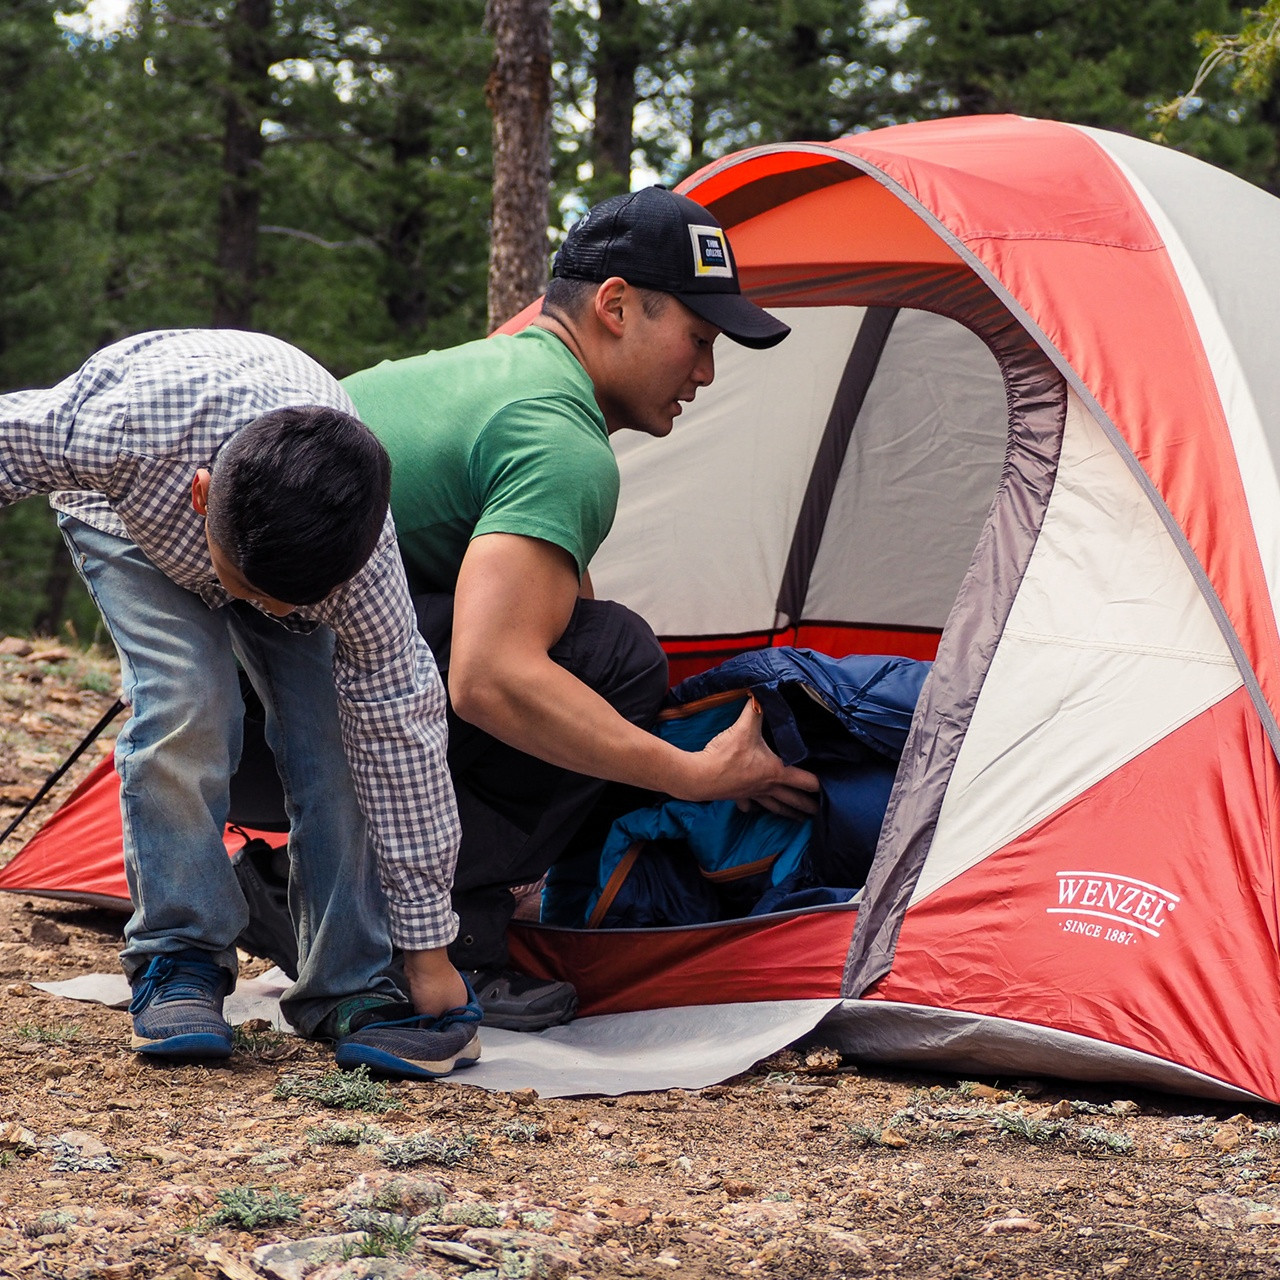 Swole dude putting a sleeping bag into his Wenzel Torry 2 Person Dome Tent